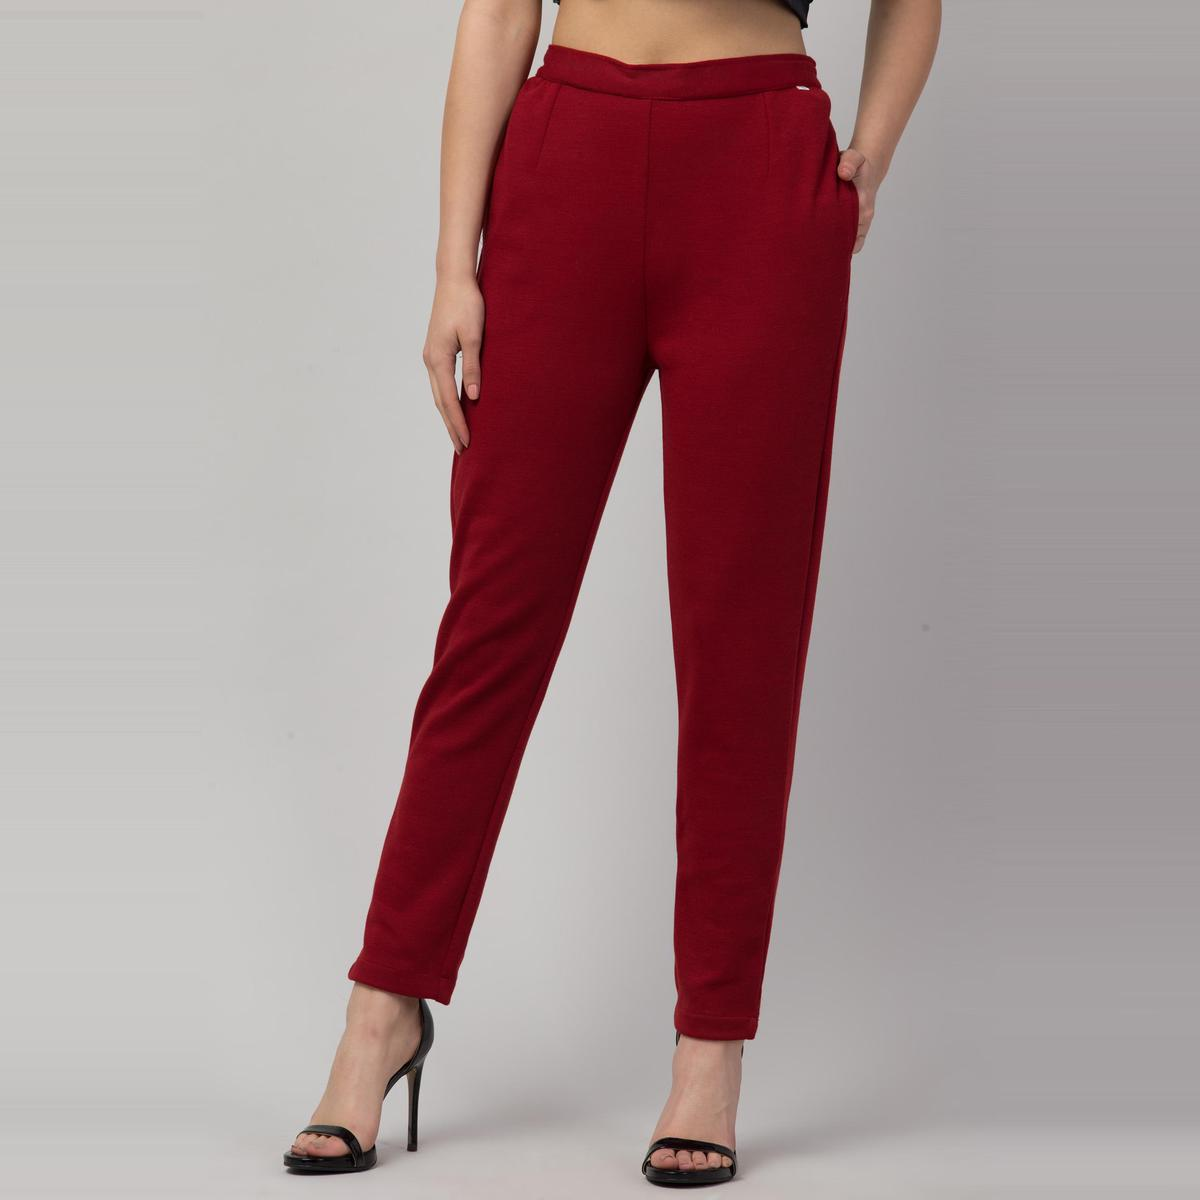 OMADAM - Red Colored Solid Cotton Cigarette Trousers